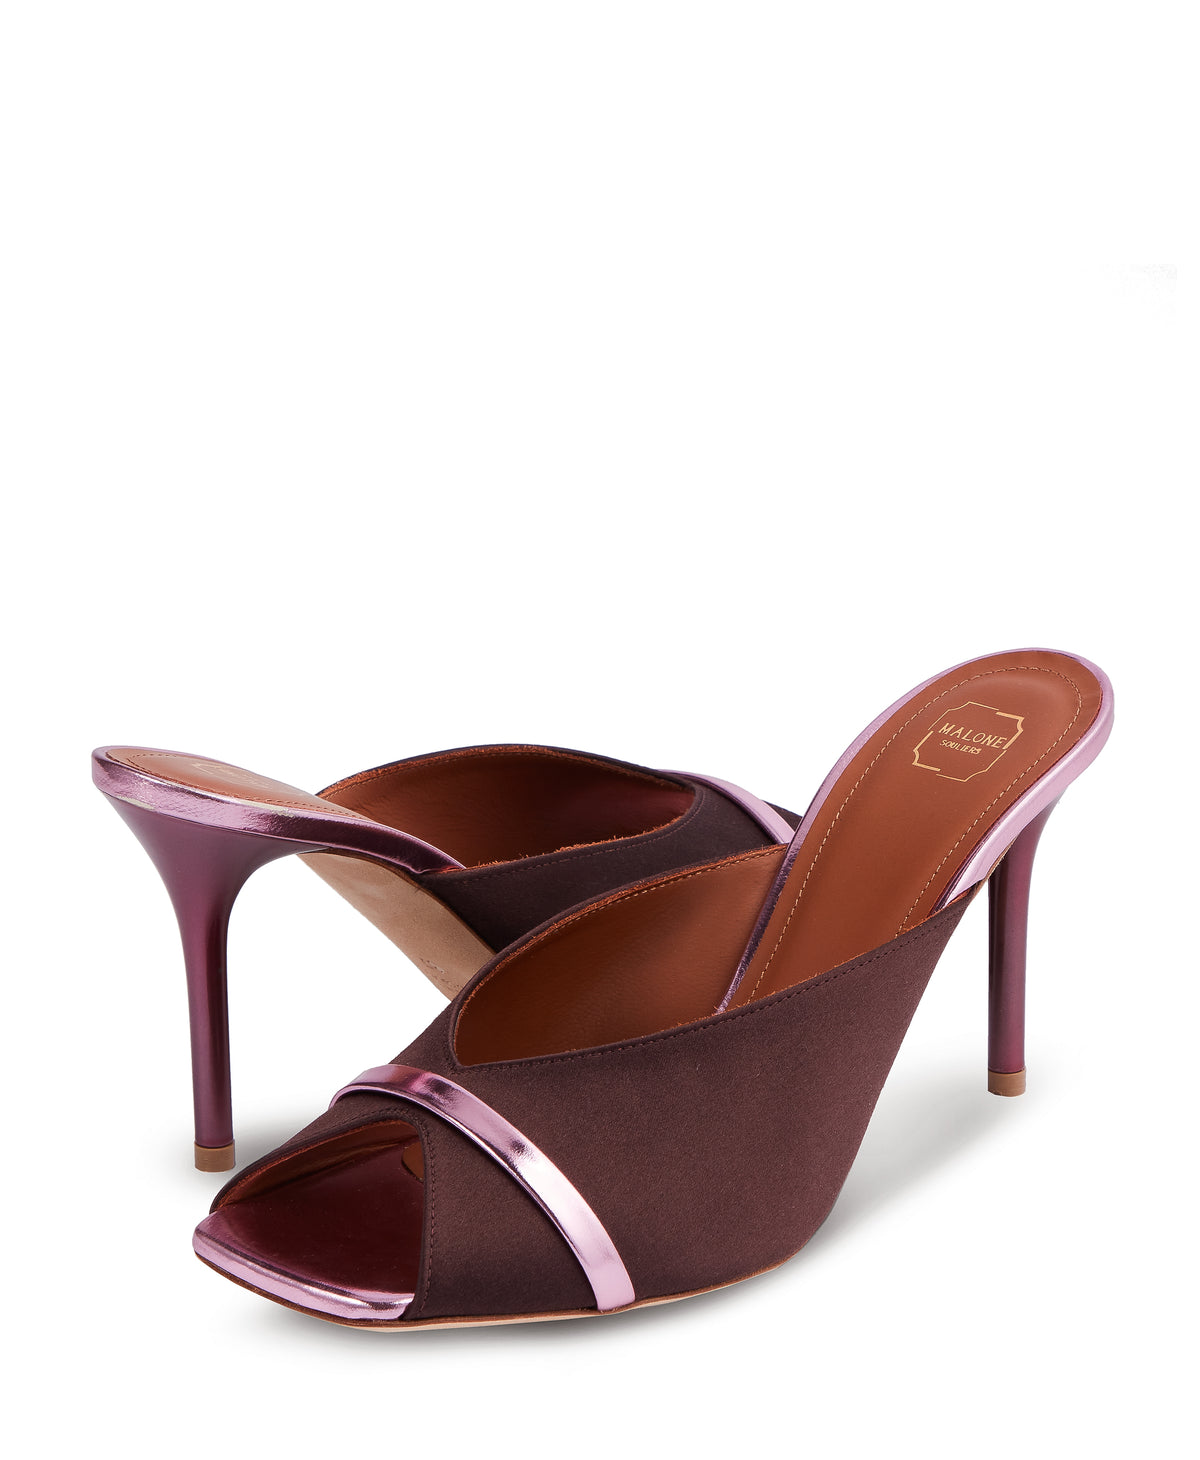 Women's Shoes in Chocolate Brown Satin With Stiletto Heel Malone Souliers